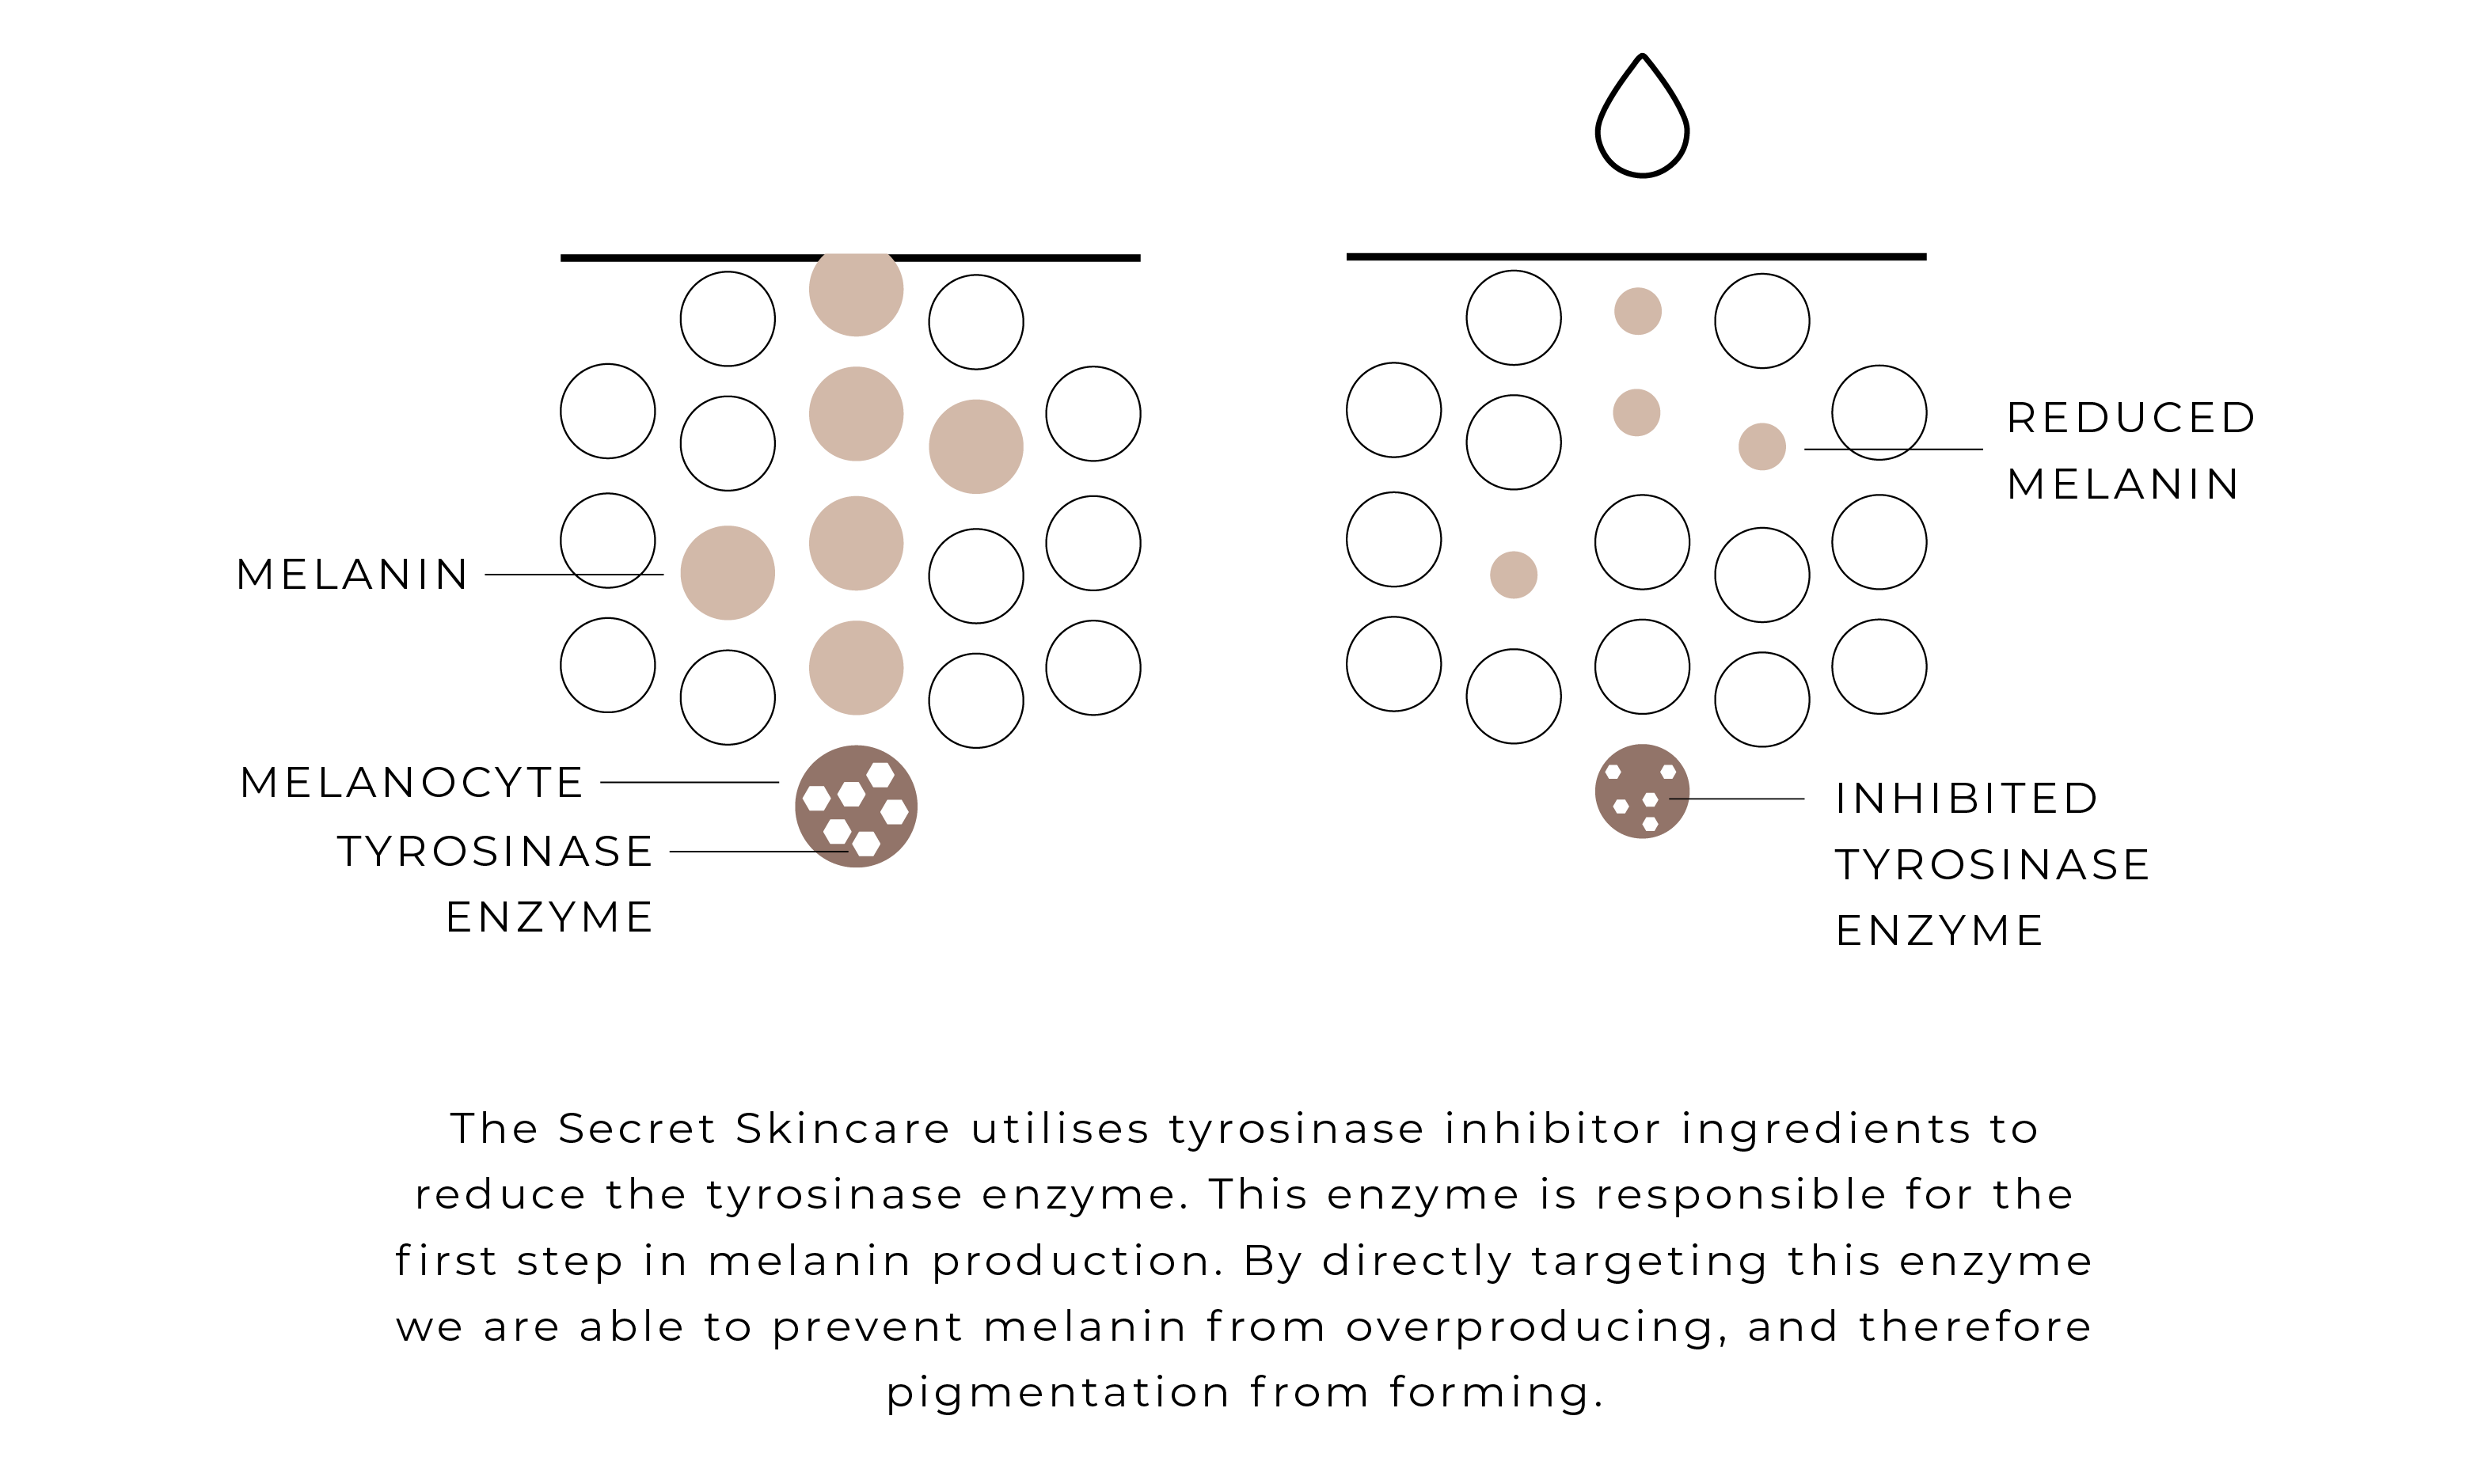 A diagram by The Secret Skincare showing the differences between slow cell turnover and rapid cell turnover of skin showing pigment.